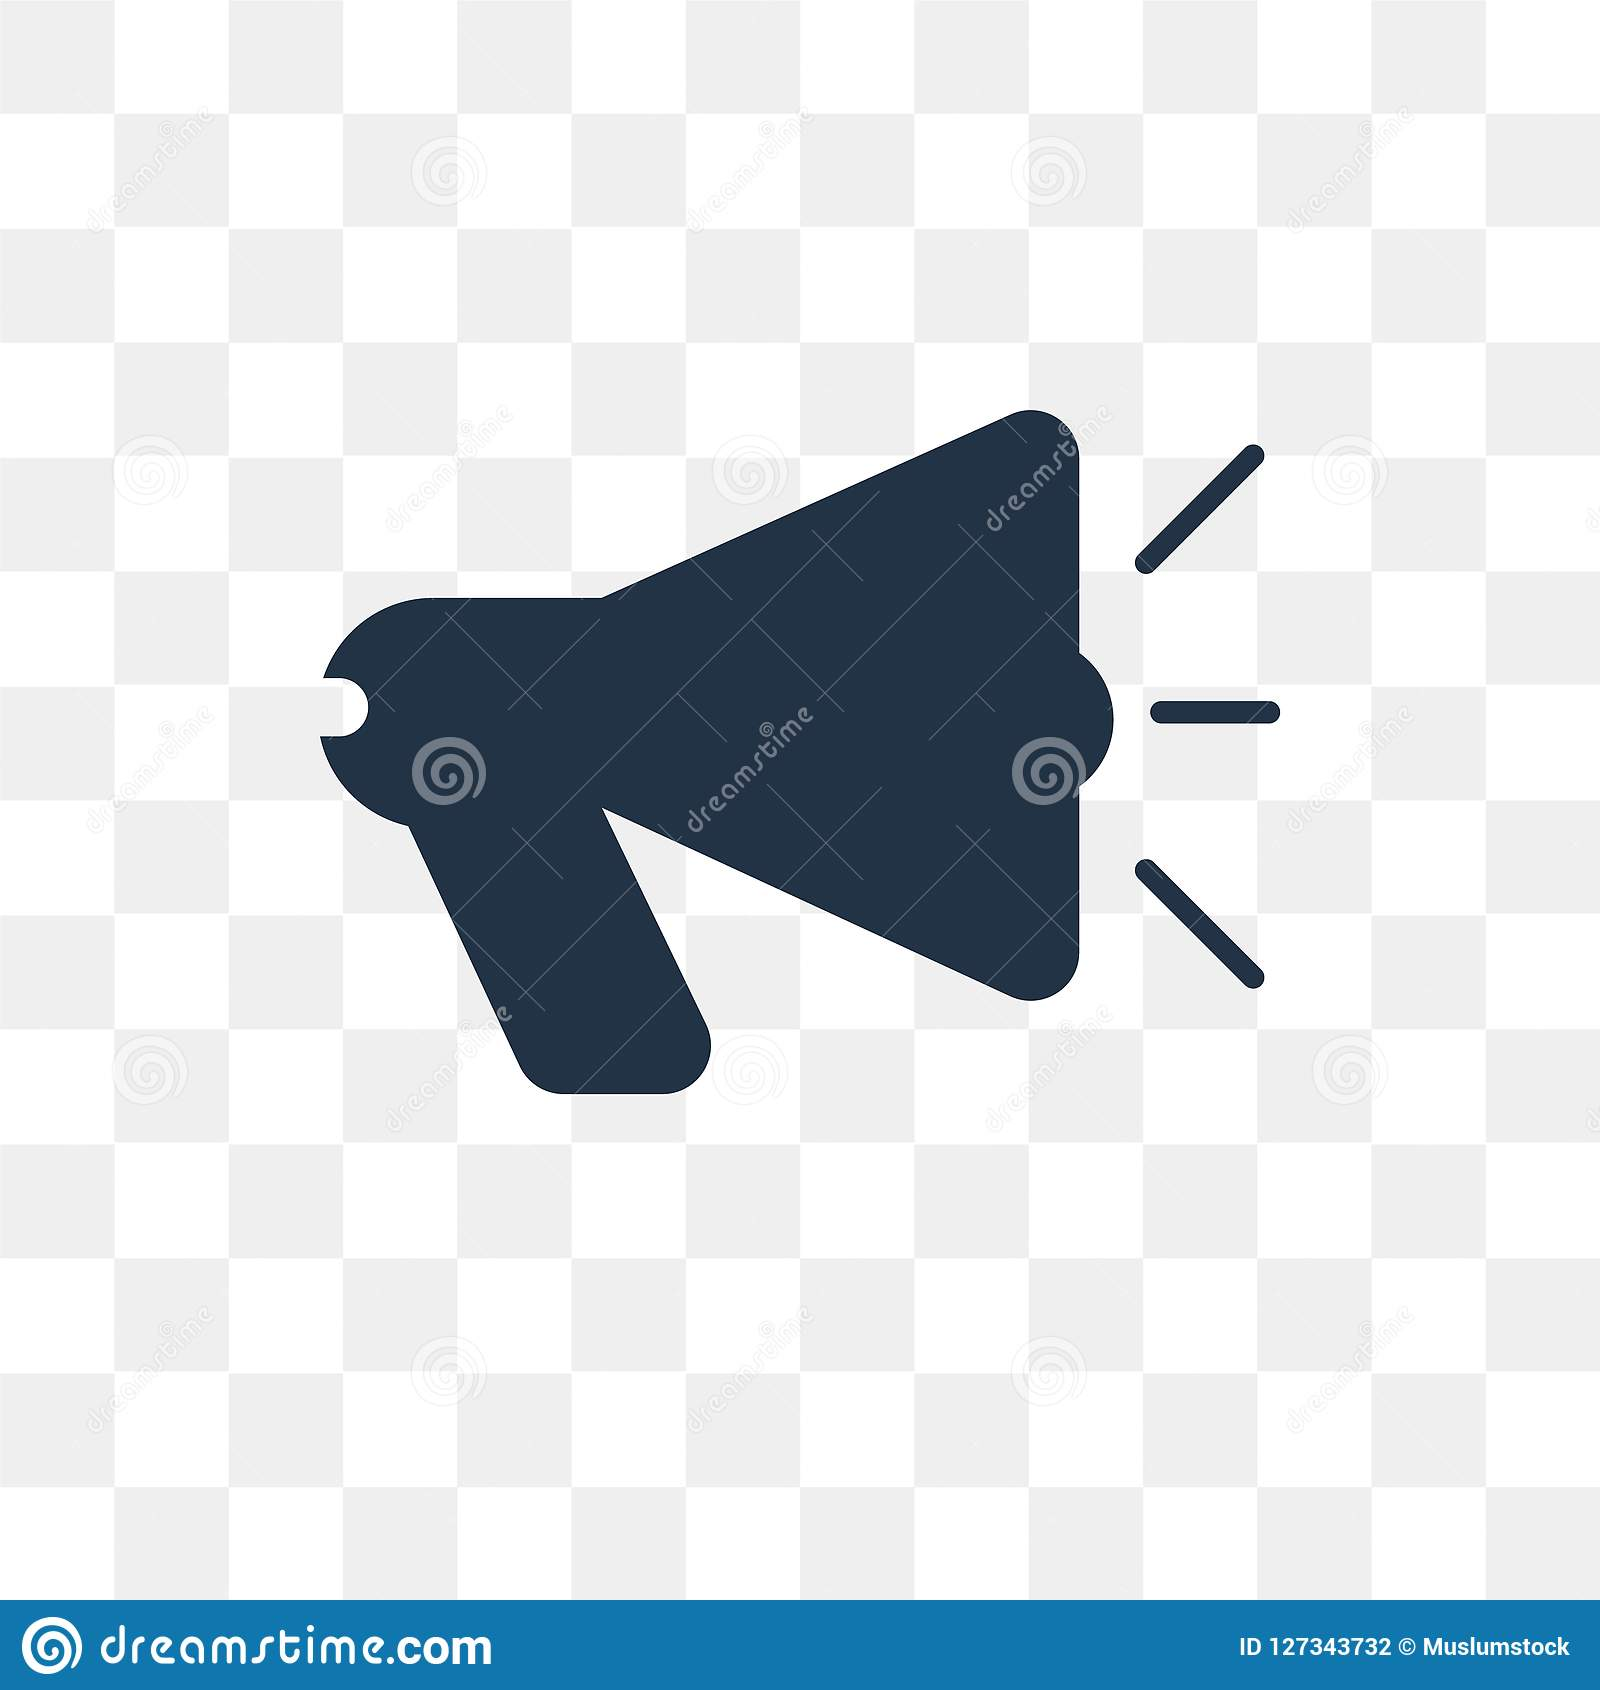 loudspeaker vector icon isolated on transparent background loud stock vector illustration of speaker megaphone 127343732 https www dreamstime com loudspeaker vector icon isolated transparent background loud transparency concept can be used web mobile image127343732